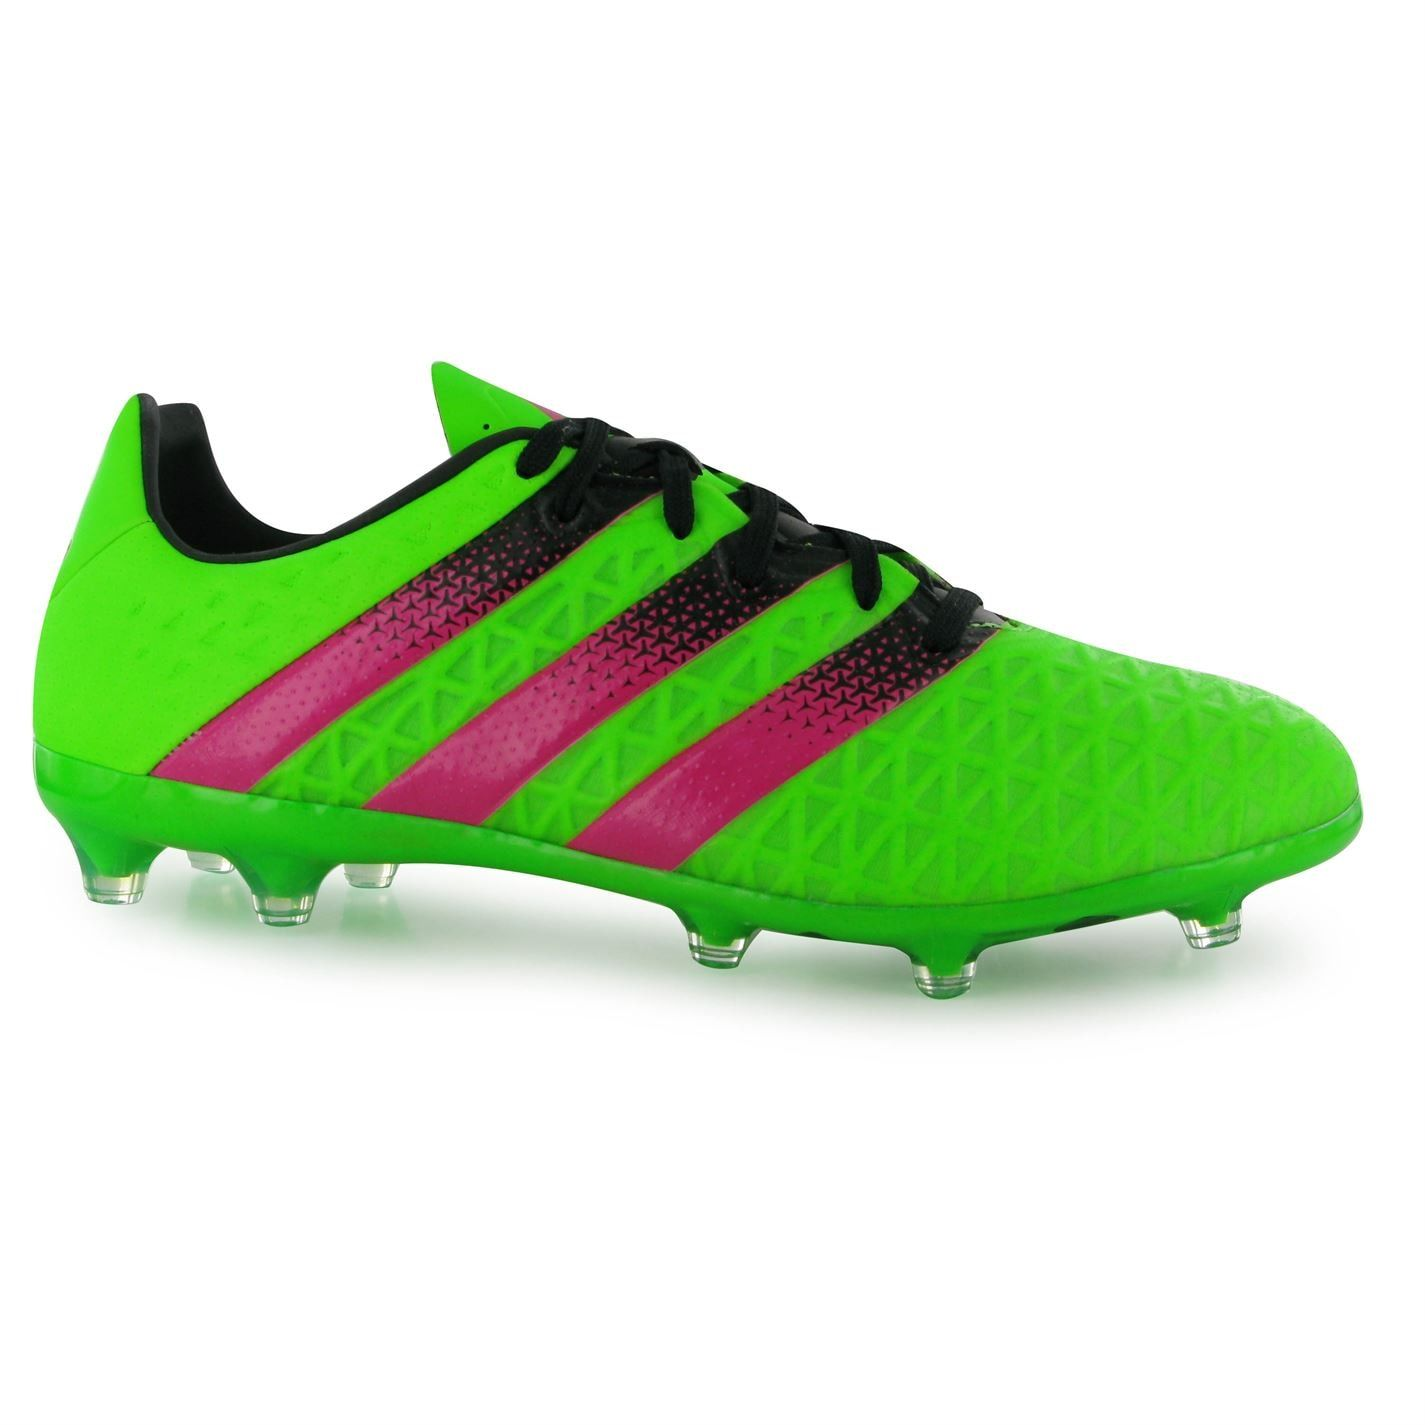 new arrival 39fa8 1e6cf Adidas Ace 16.2 FG Mens Football Boots